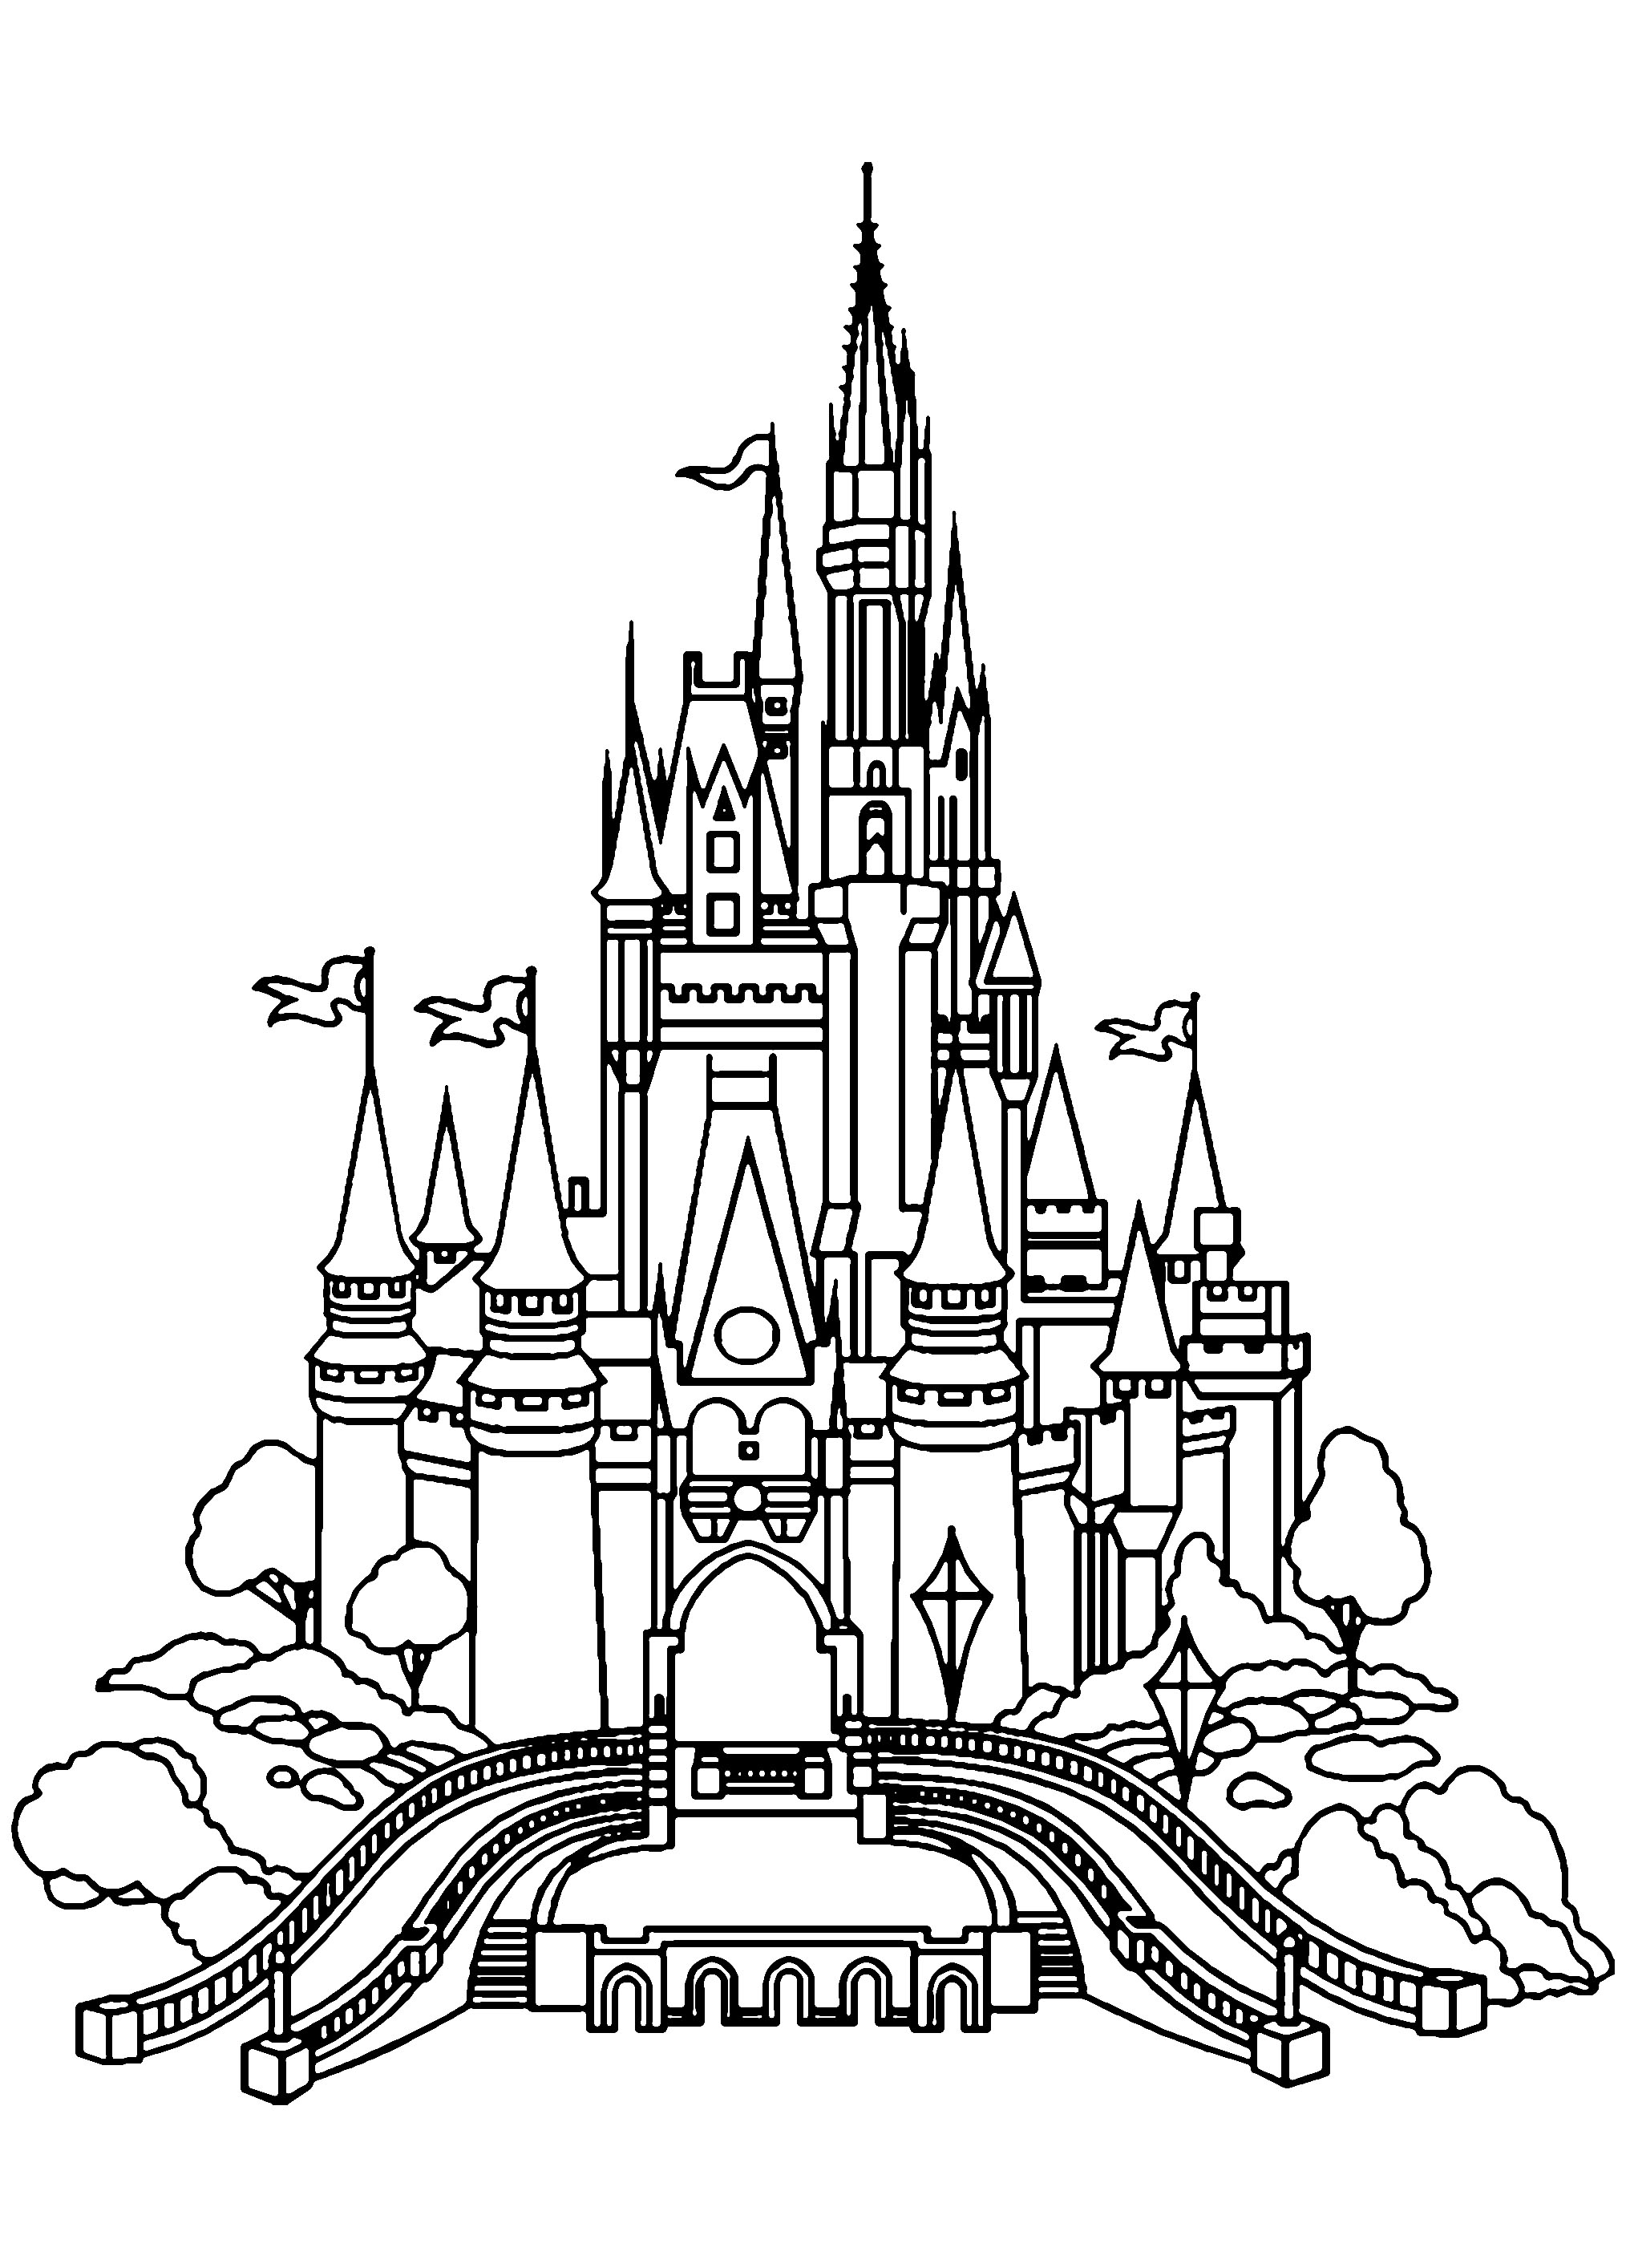 free printable castle coloring pages cartoon design disney princess castle coloring pages to kids printable coloring free castle pages